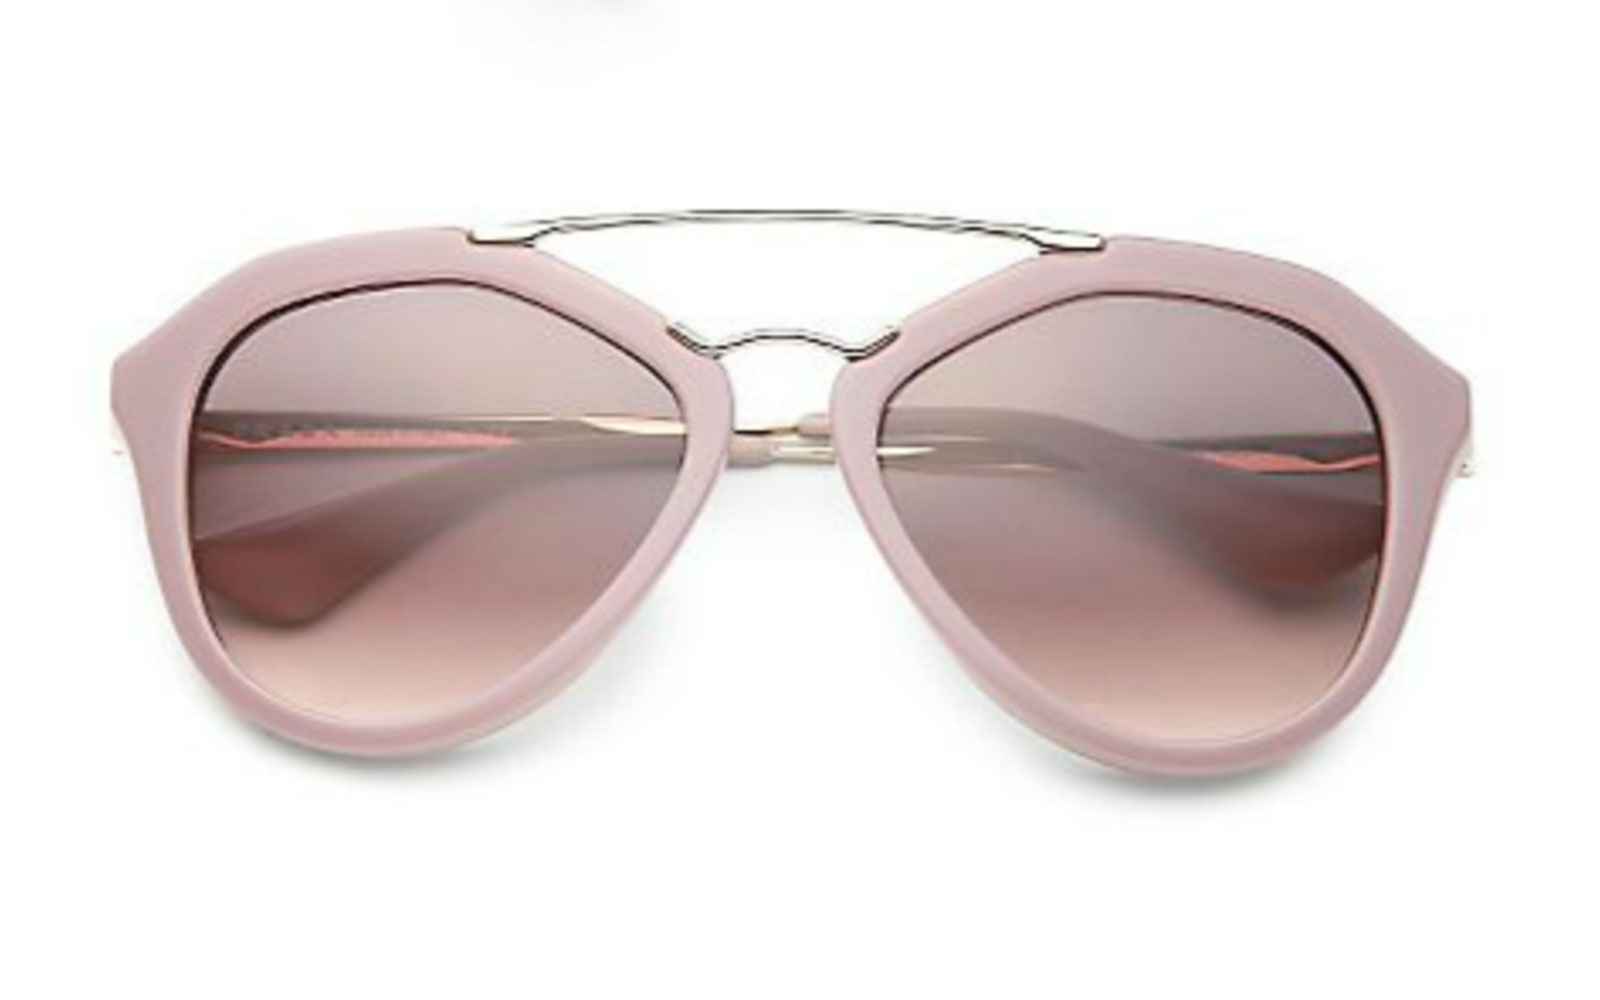 Prada Pilot aviator sunglasses, $325